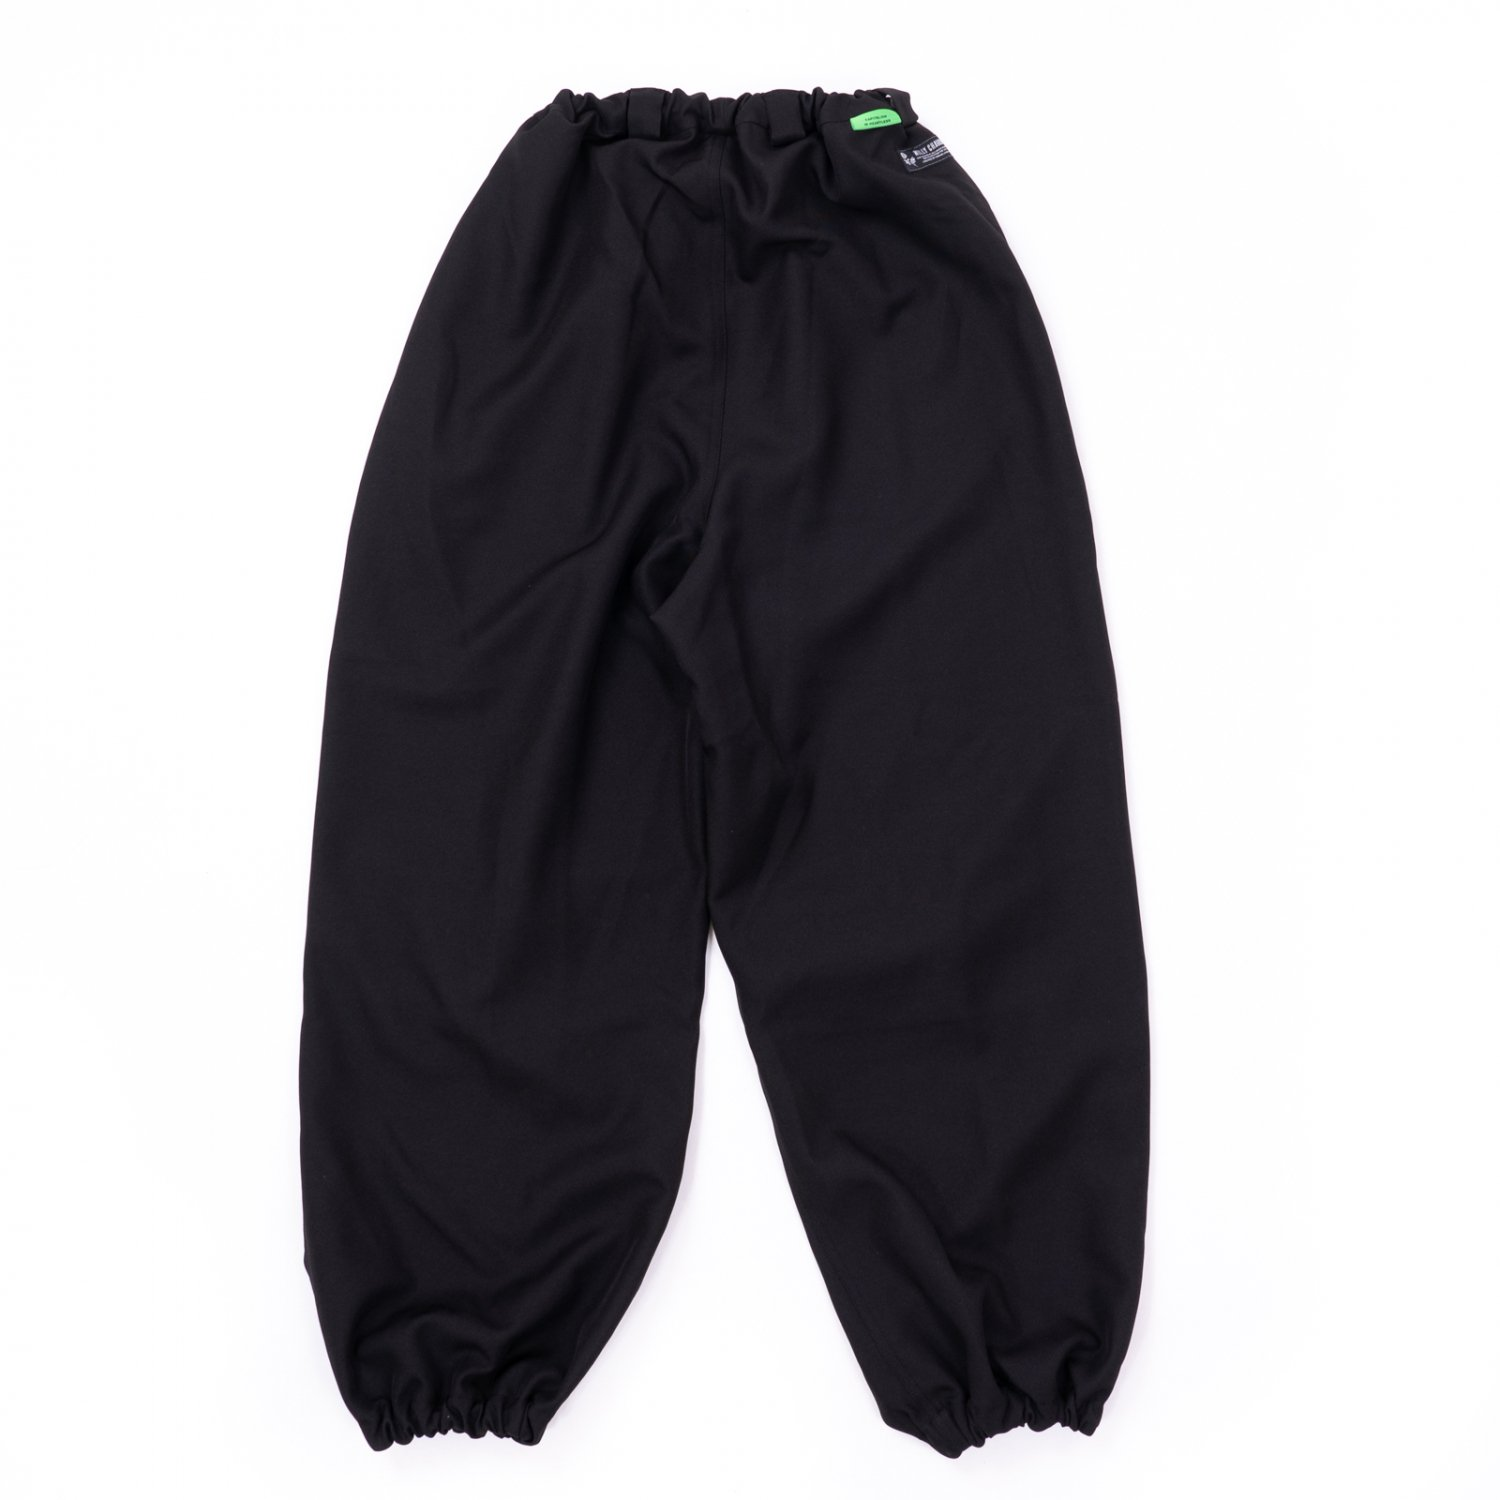 WILLY CHAVARRIA * WINDBREAKER PANT POLYESTER * Black